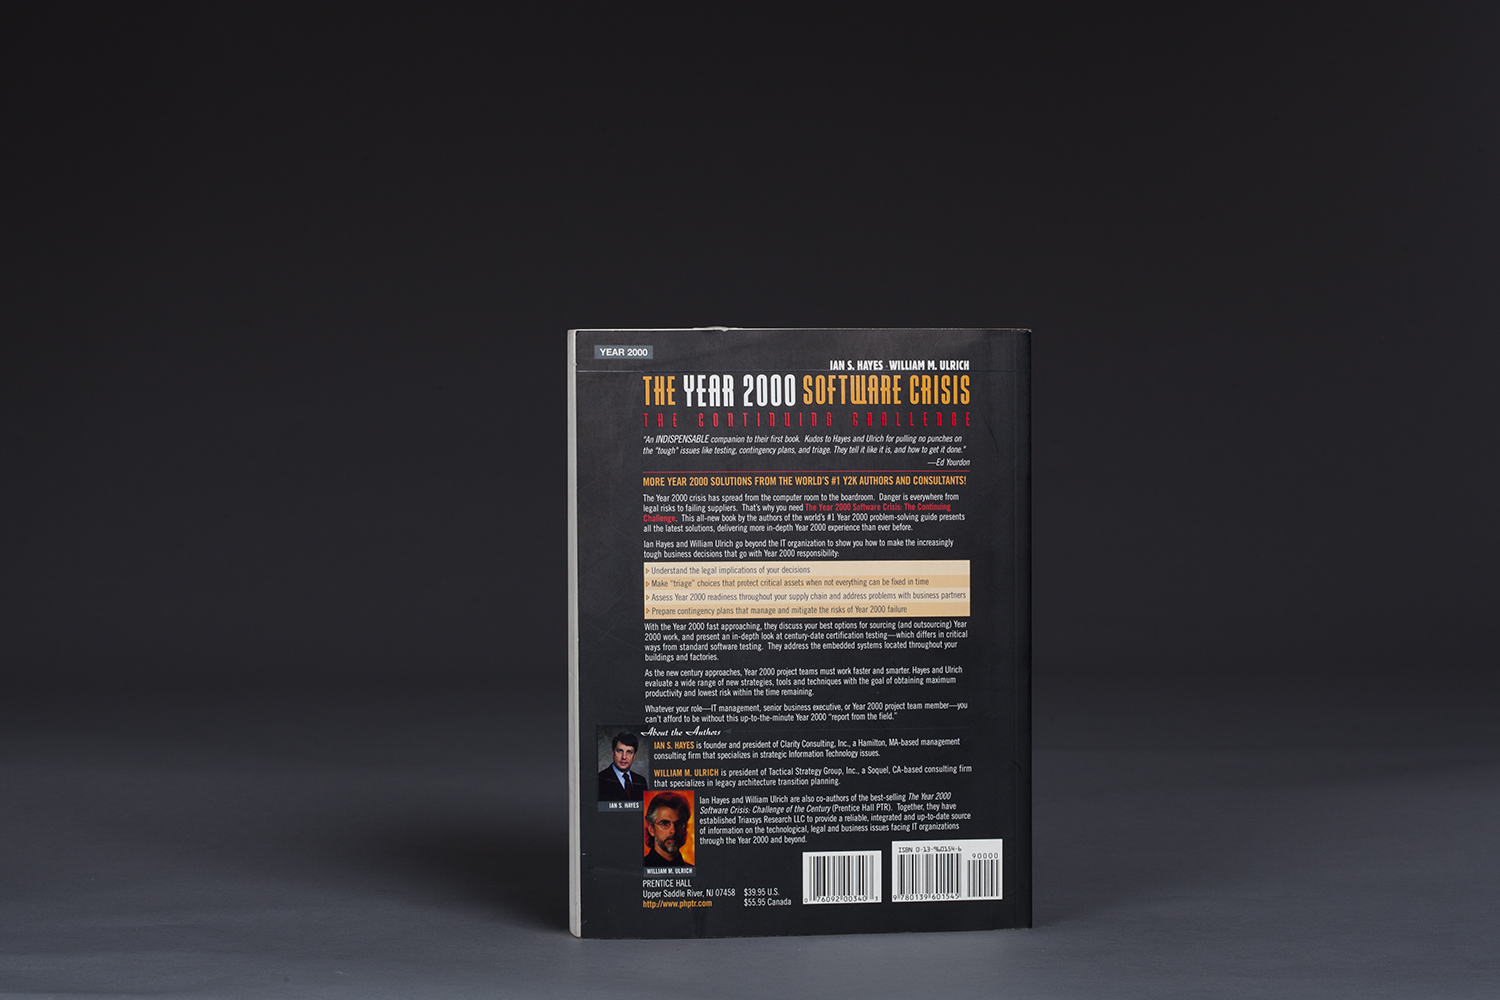 The Year 2000 Software Crisis - The Continuing Challenge - 0651 Back.jpg